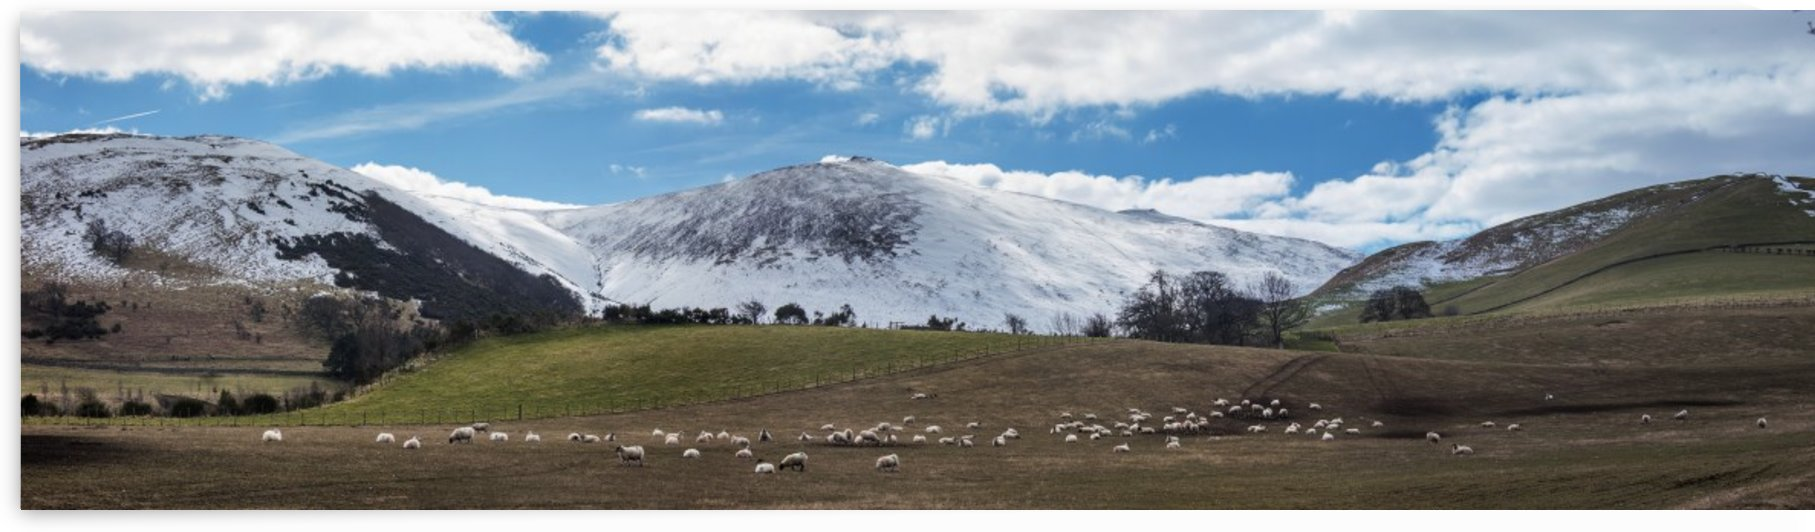 Sheep grazing in a field with snow covered mountains in the background;Northumberland England by PacificStock